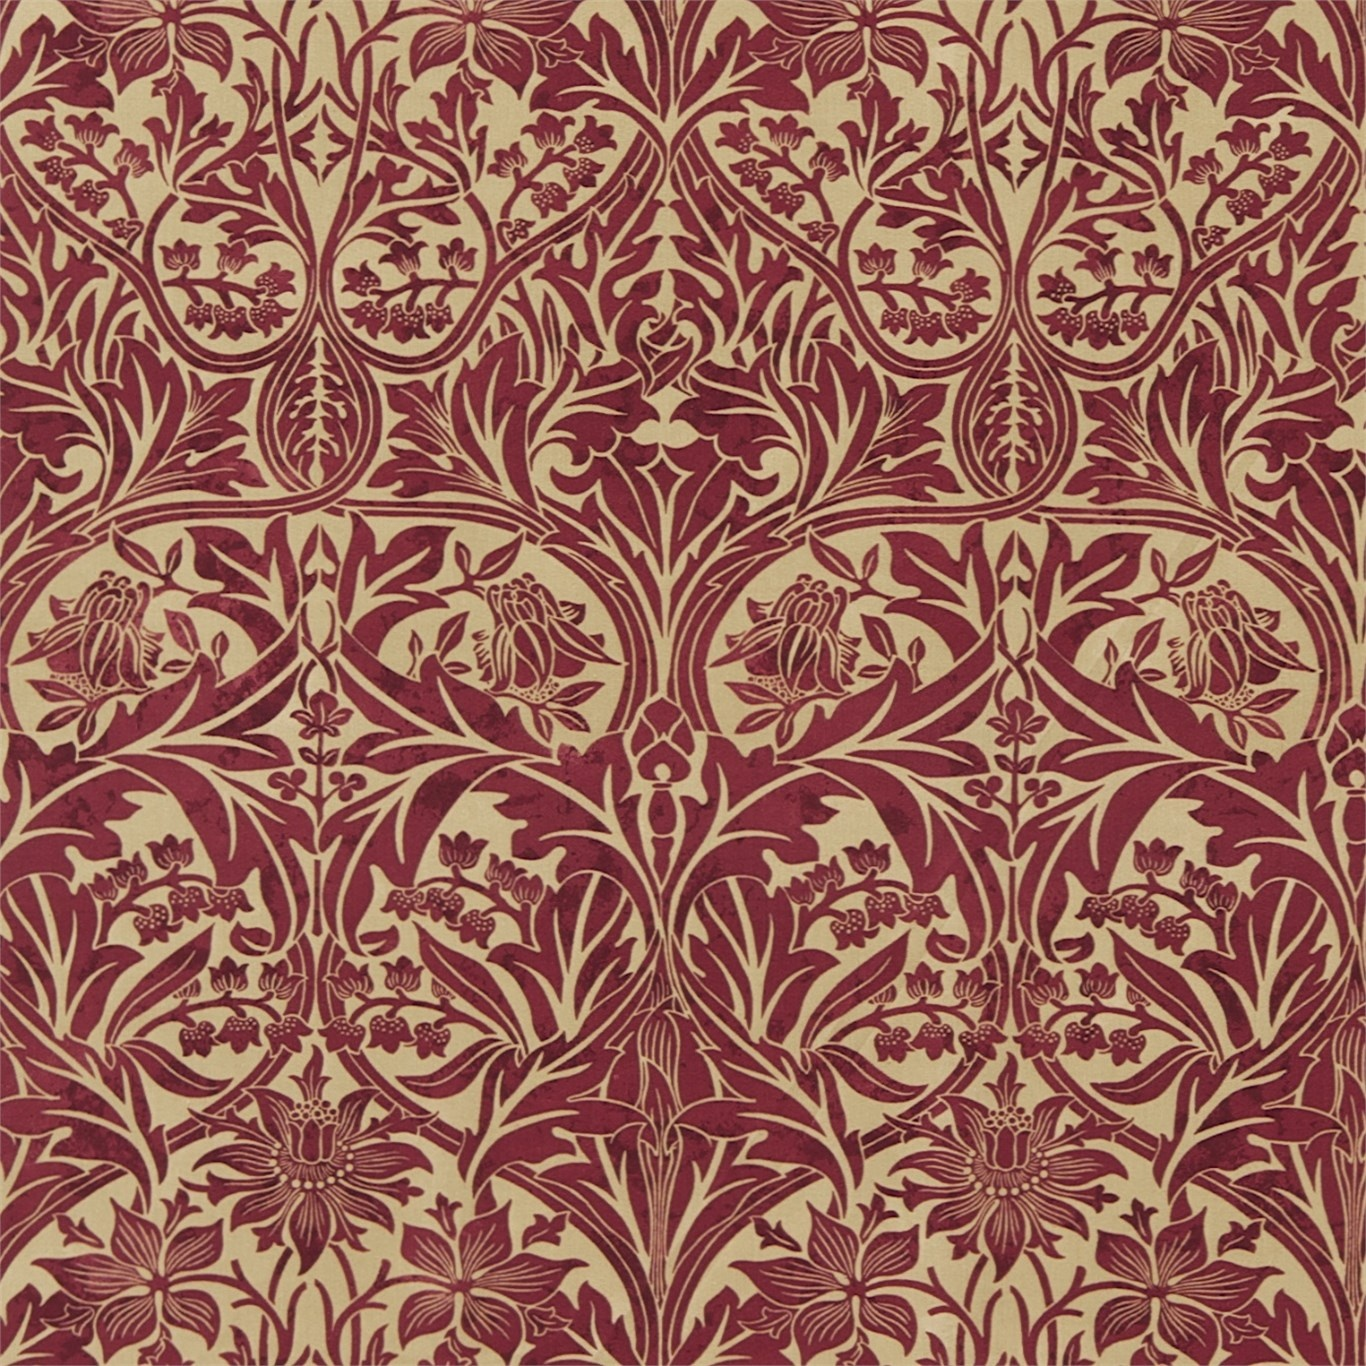 Image of Morris & Co Bluebell Claret/Gold Curtain Fabric 220332